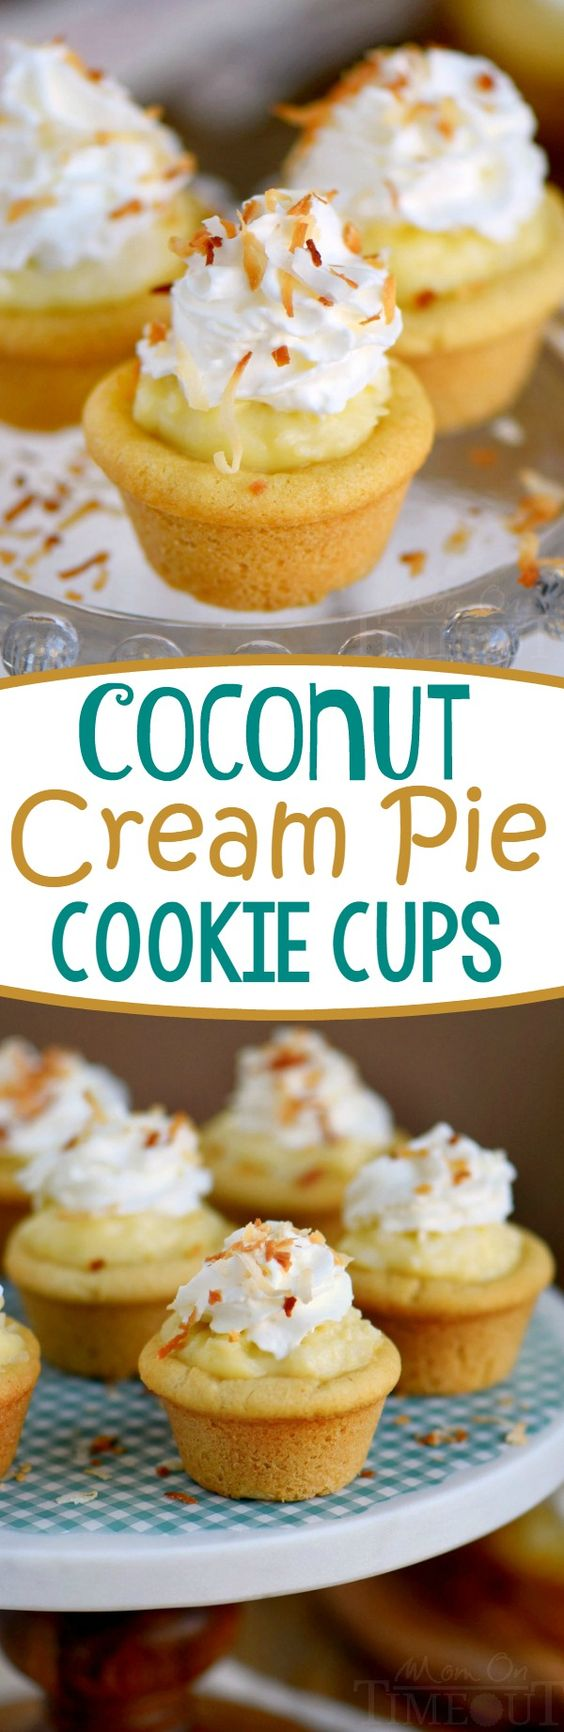 Coconut cream pies, Cookie cups and Coconut cream on Pinterest